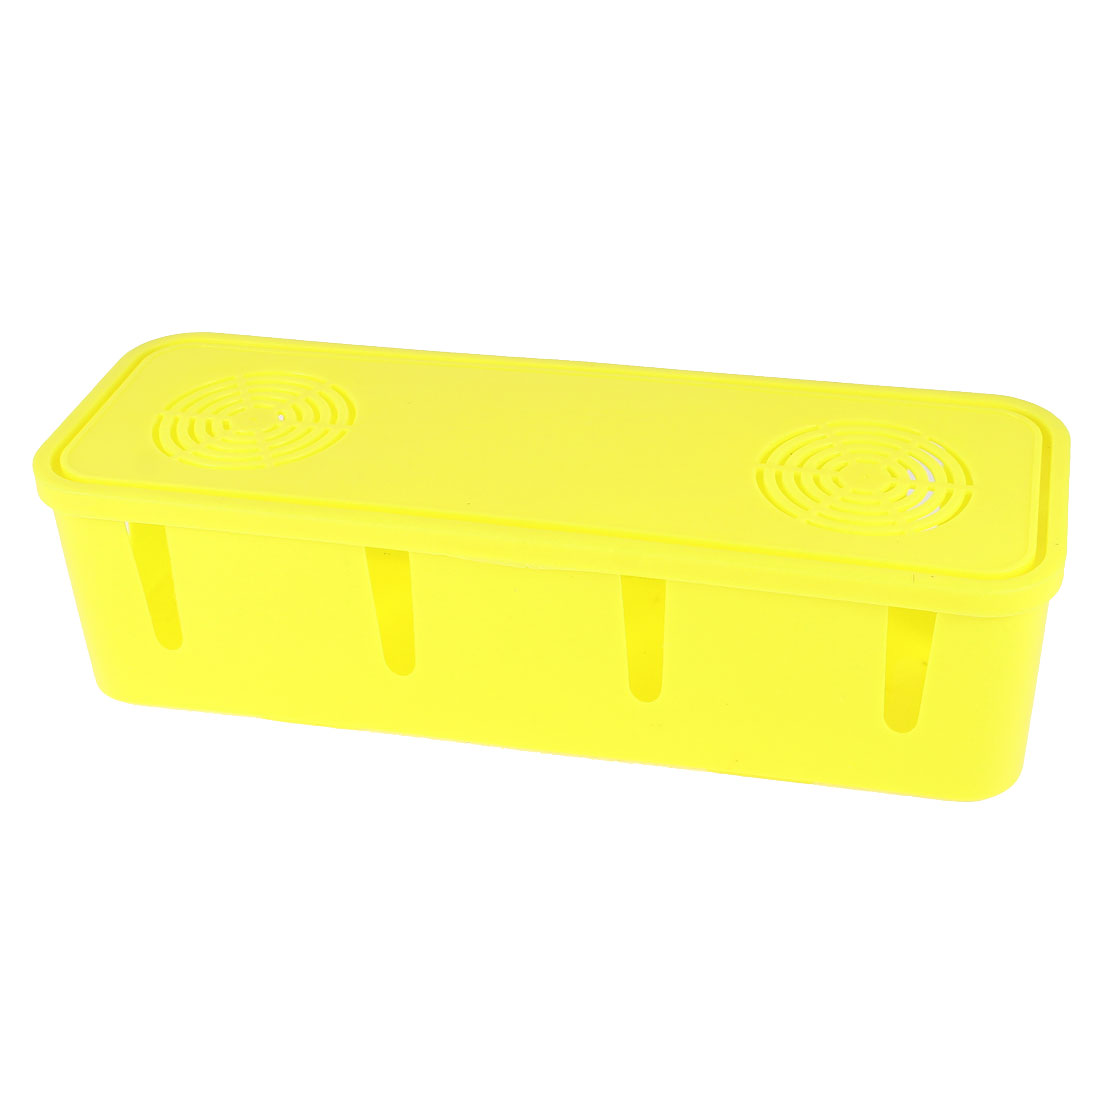 Yellow Plastic Power Plug Cable Cord Socket Storage Box Case